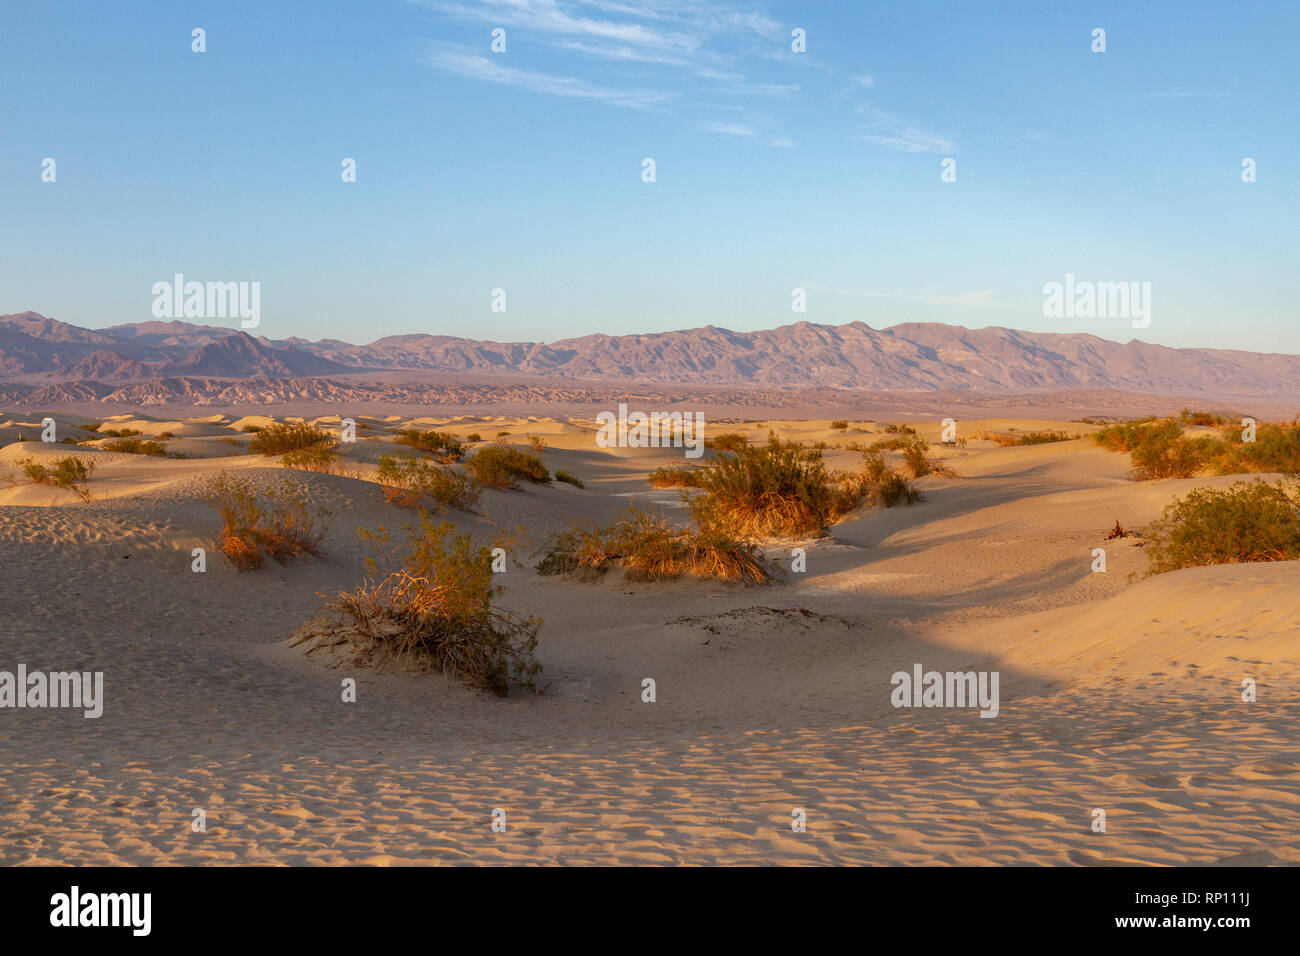 Mesquite Flat Sand Dunes, Death Valley National Park, California, United States. - Stock Image